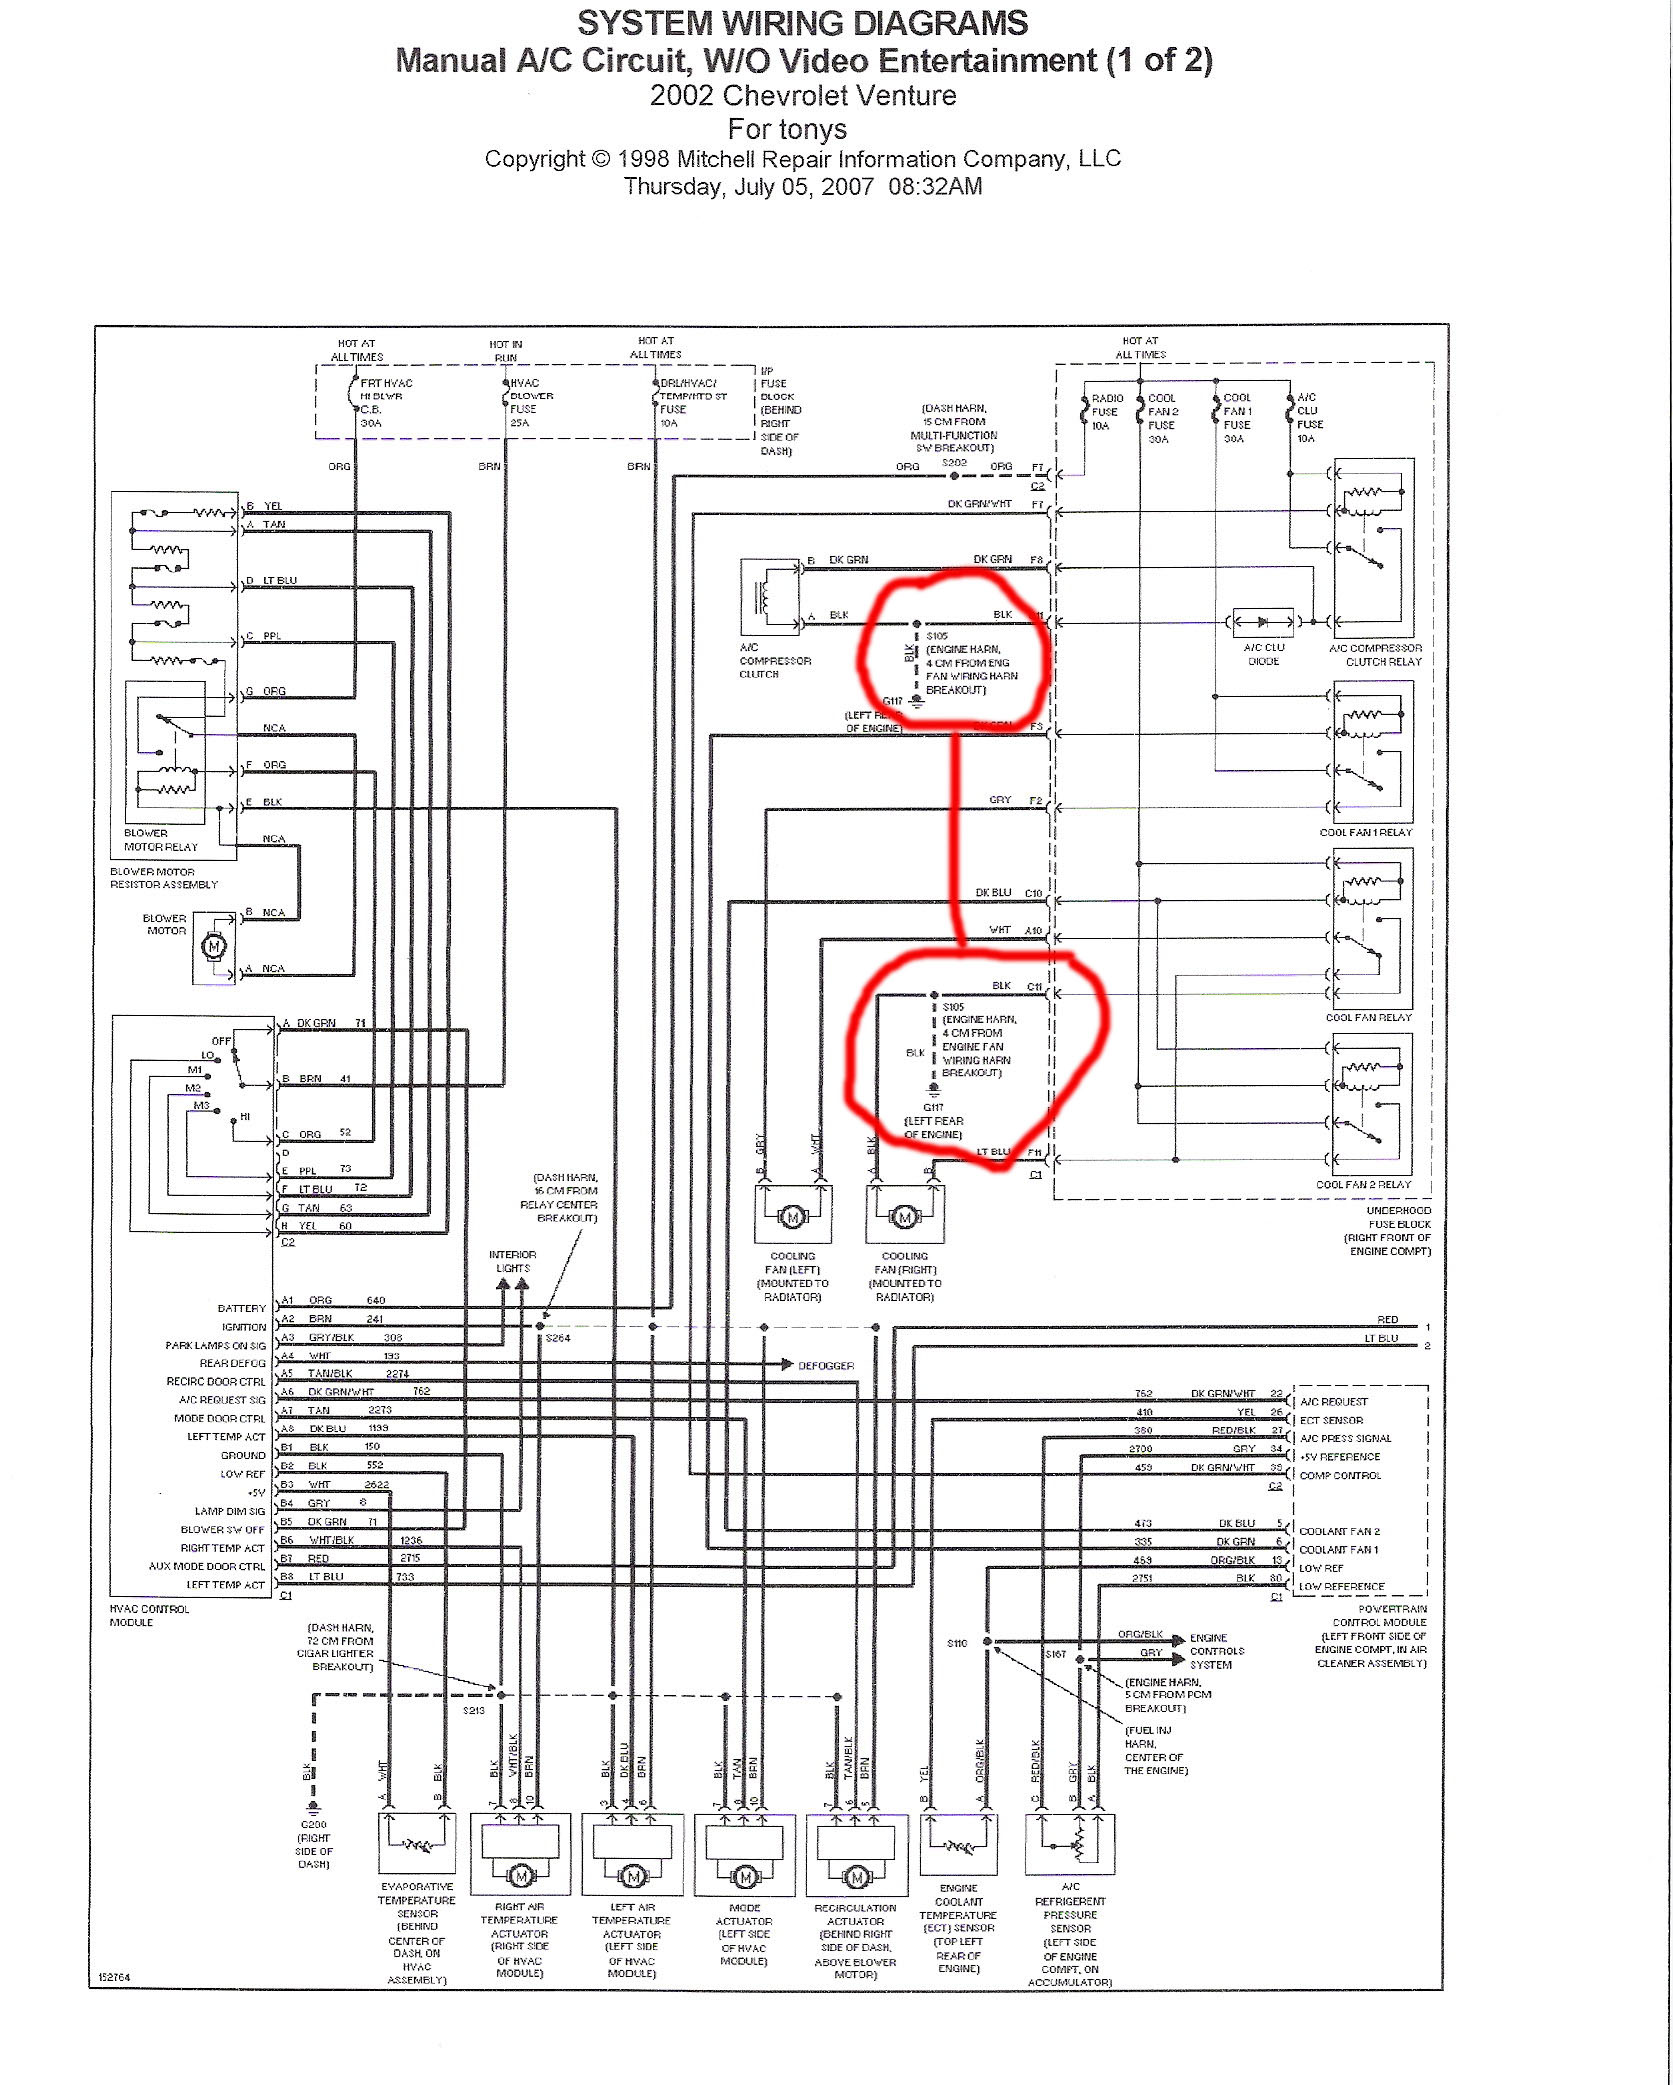 Sterio Wiring Diagram For Chevrolet Express Van